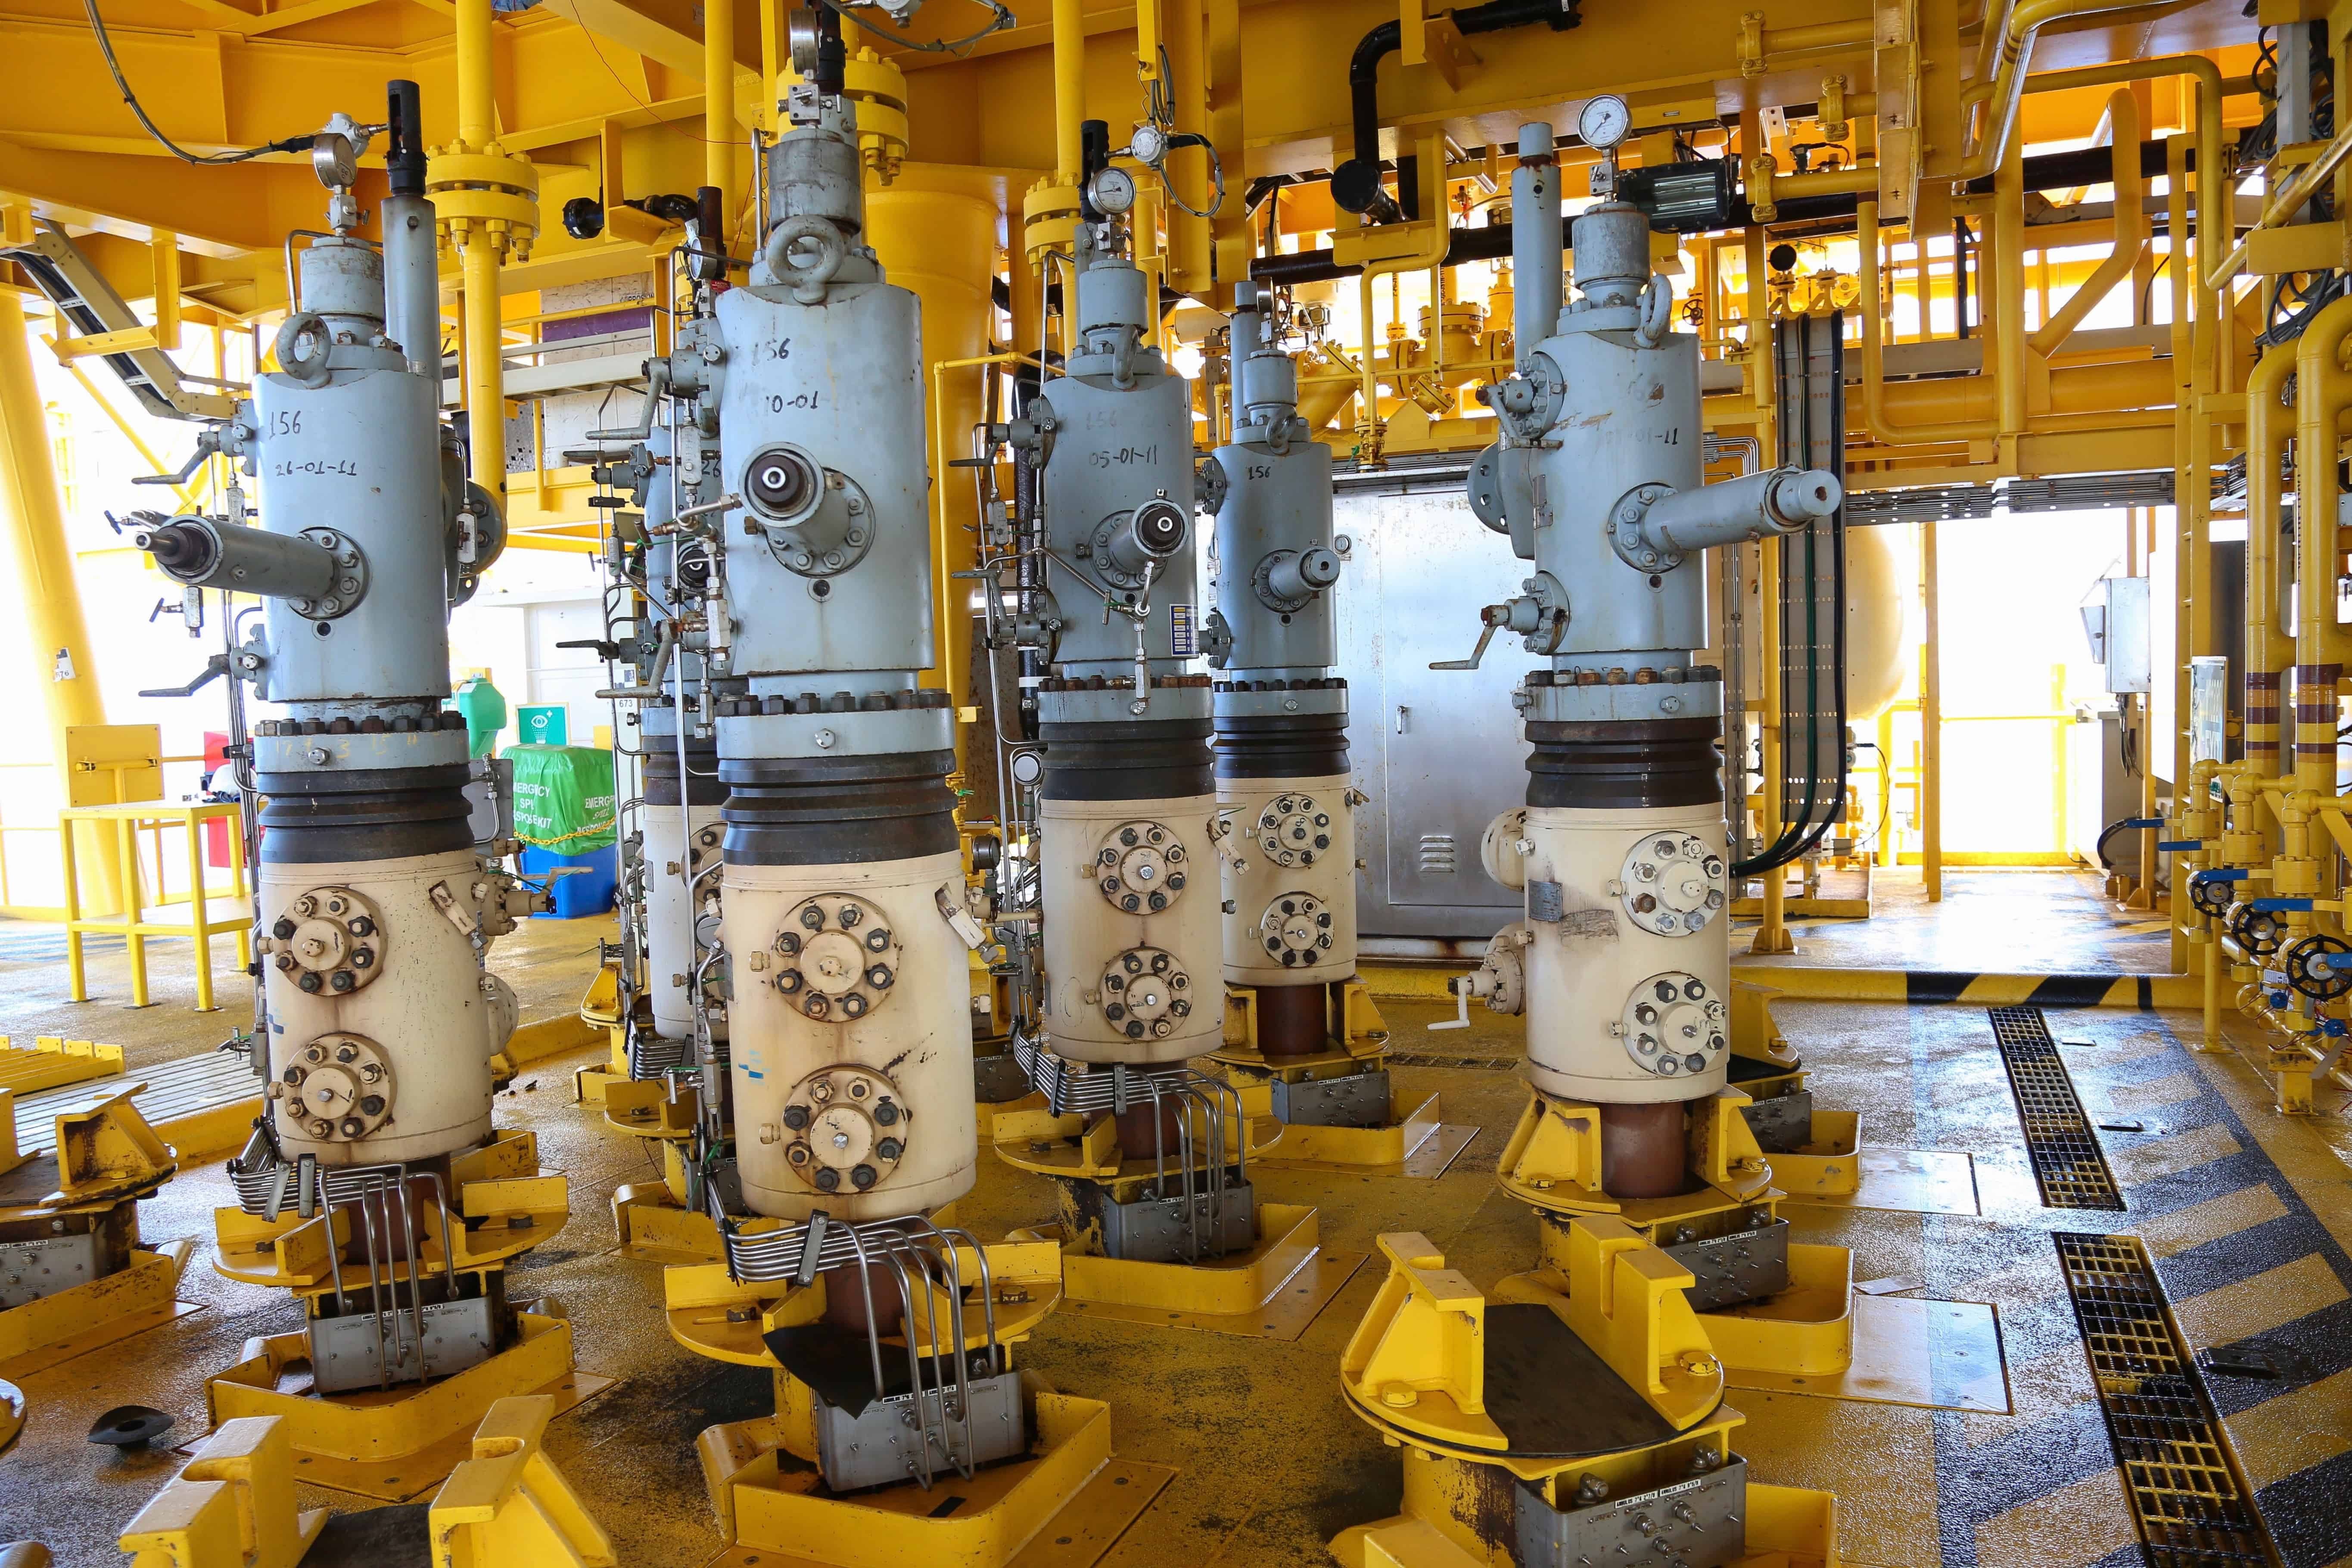 The Role Of Portable Ex Power Distribution In The Oil